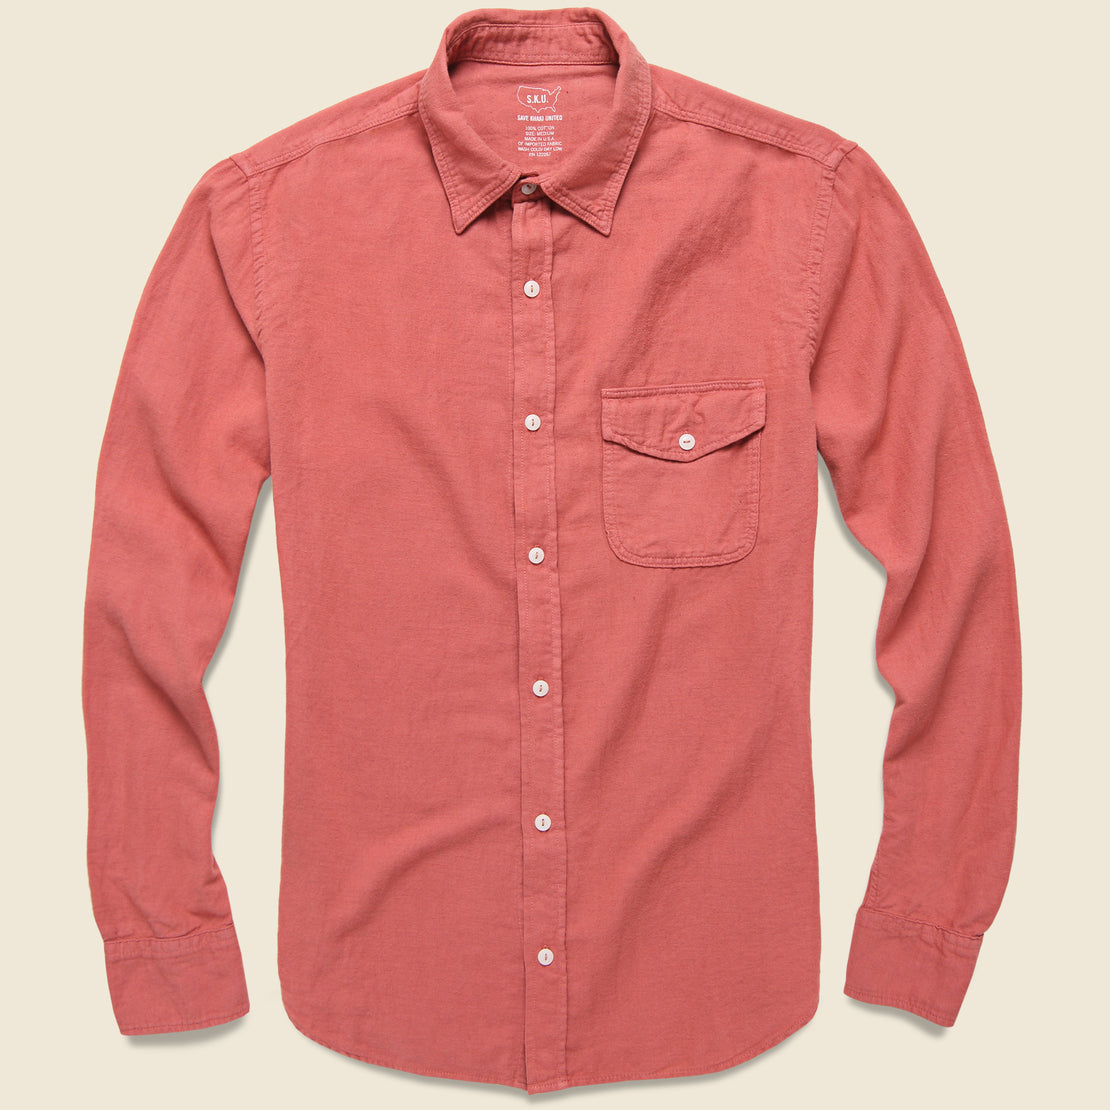 Save Khaki Oatmeal Flannel Workshirt - Terra